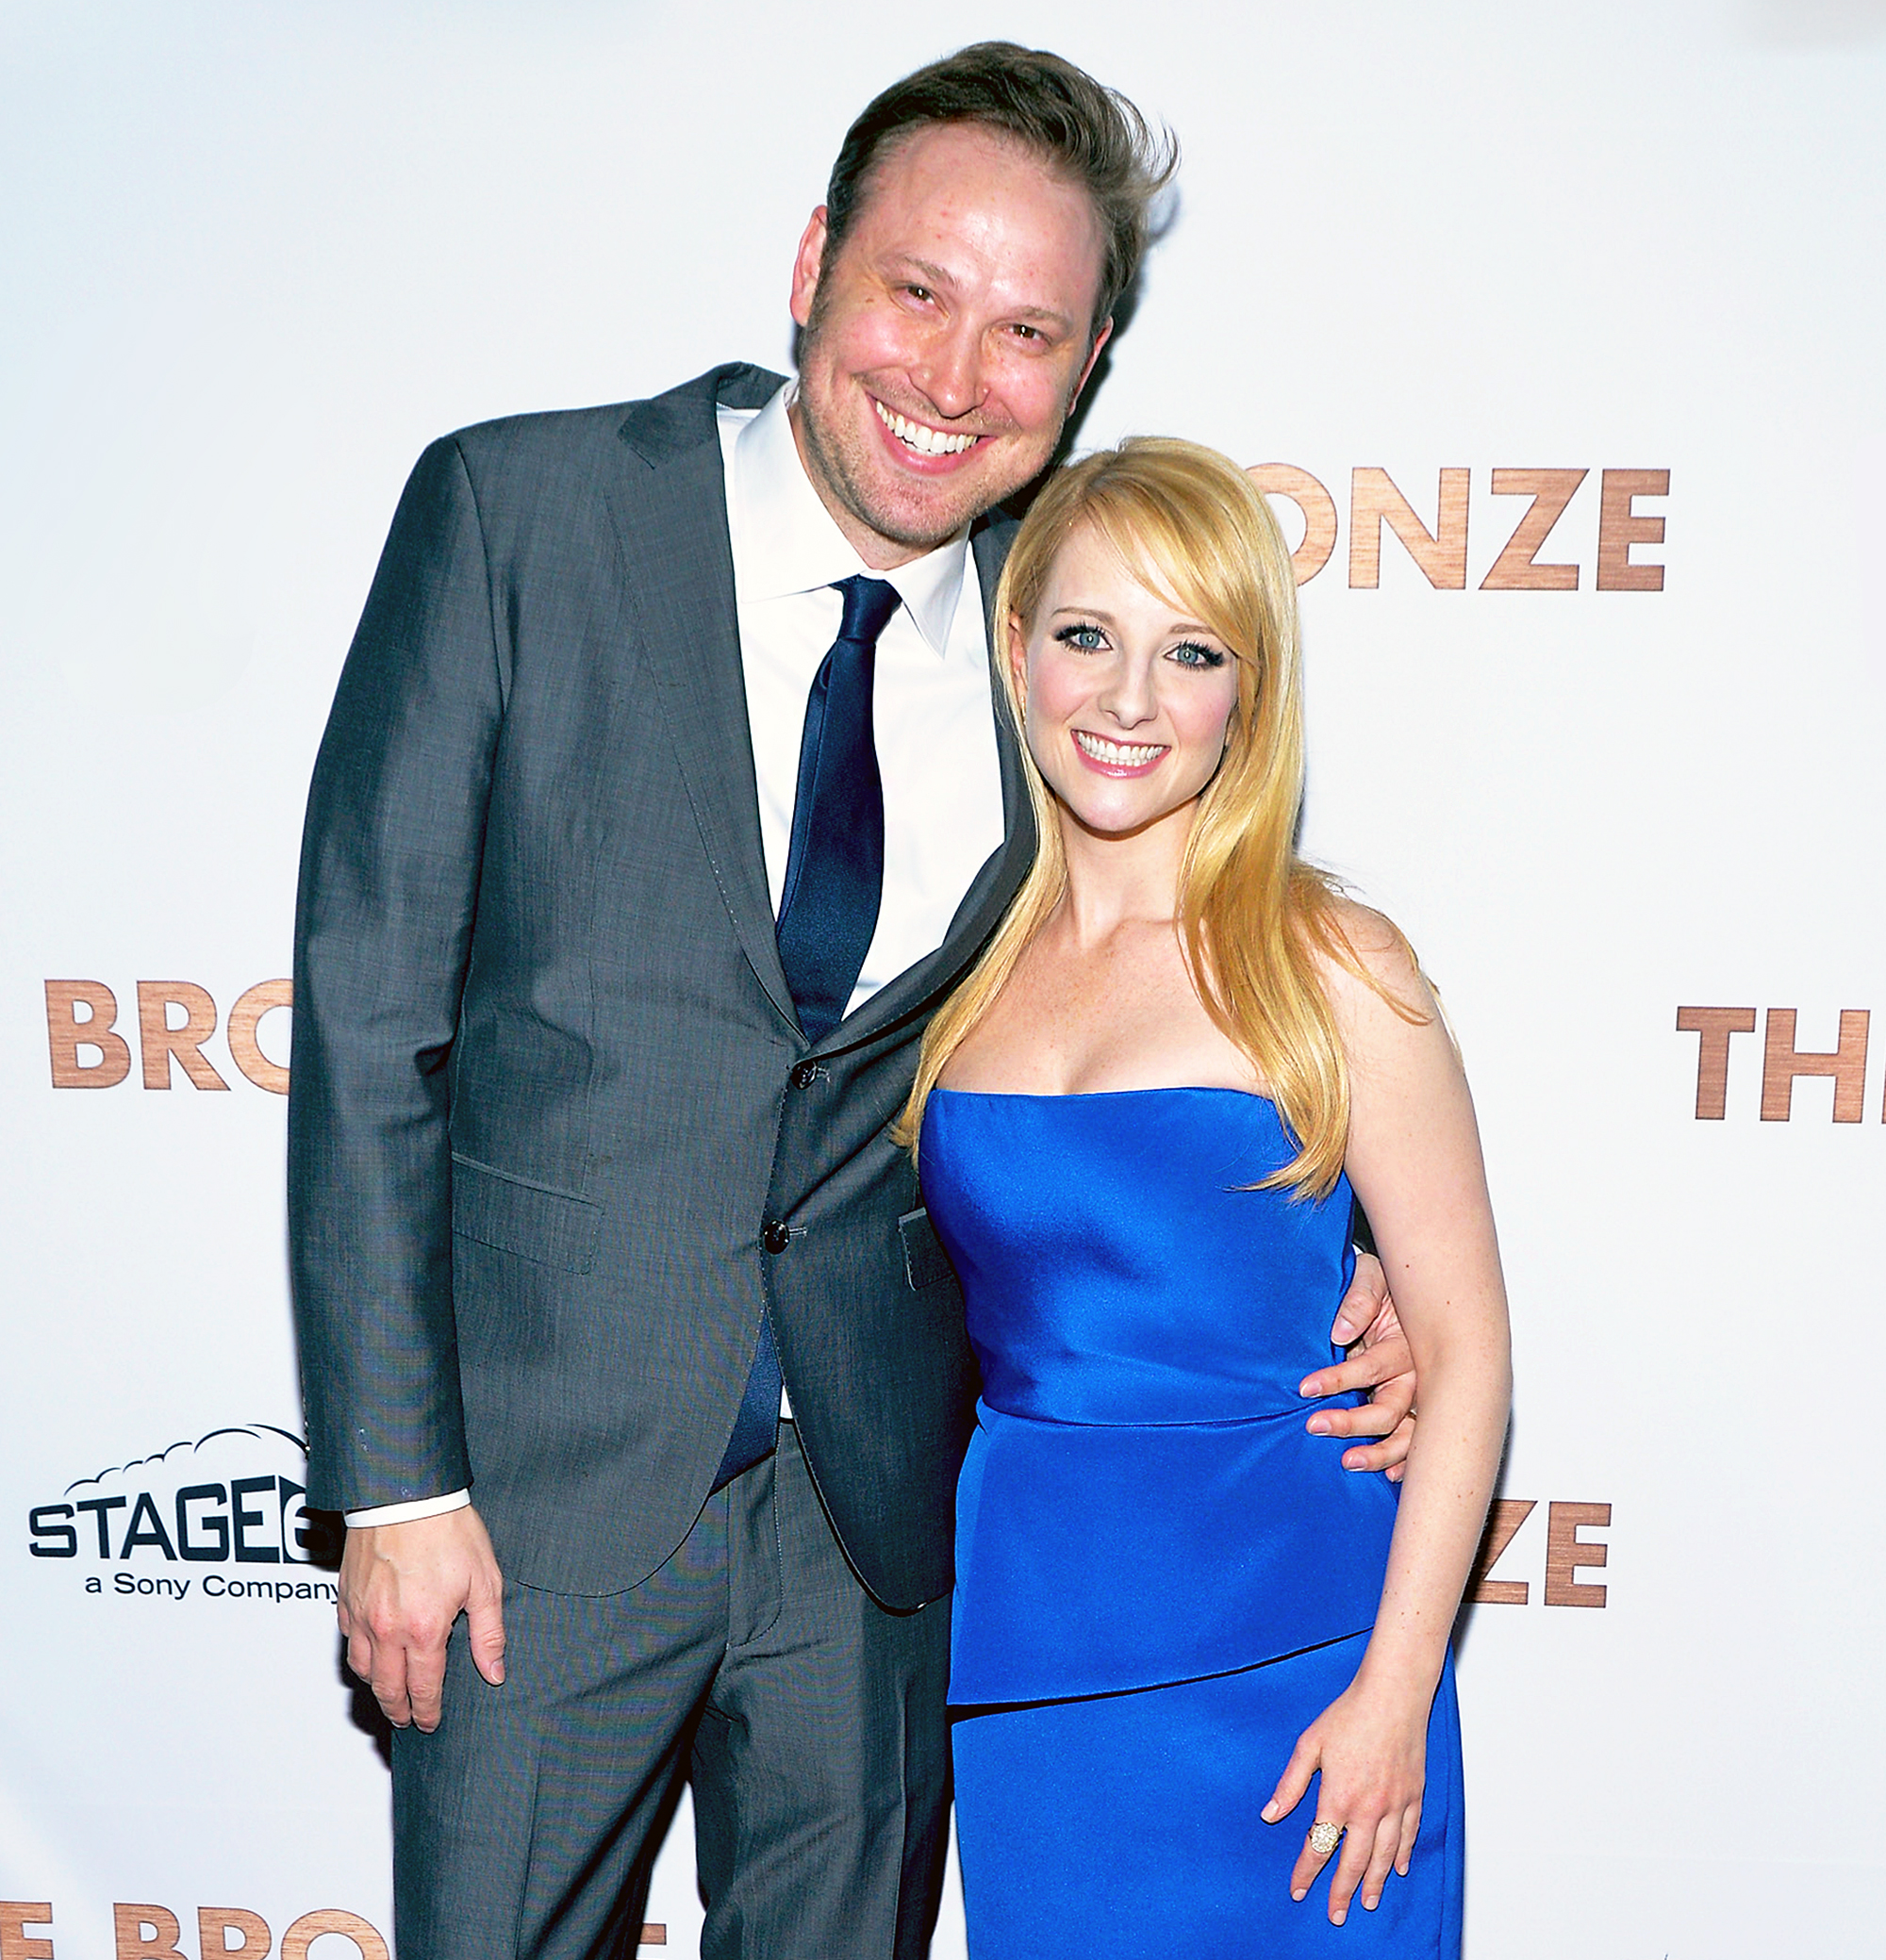 The Big Bang Theory's Melissa Rauch has welcomed a baby girl